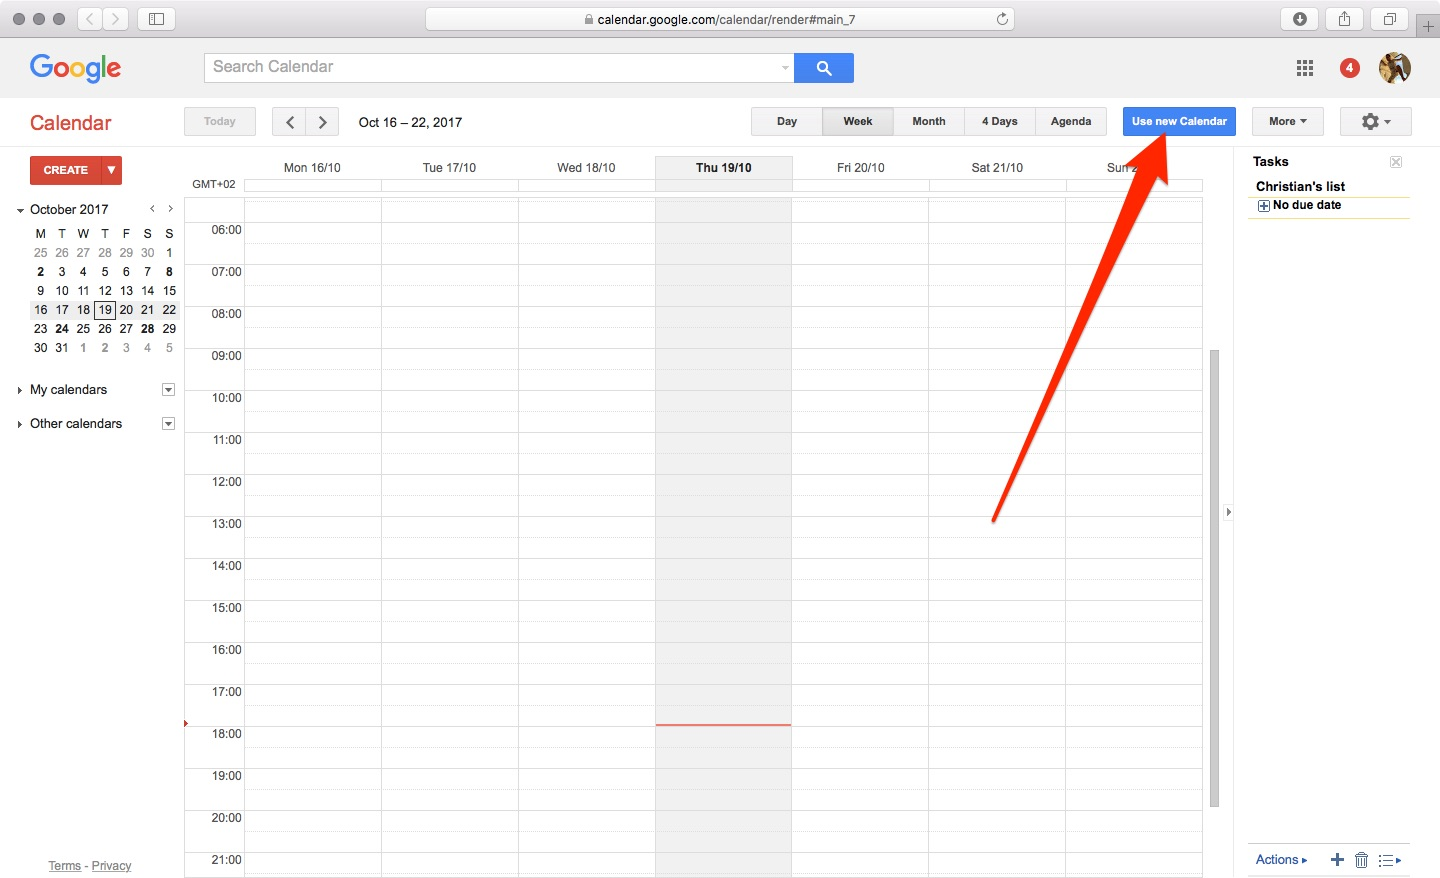 How to enable Material Design for Google Calendar on the web